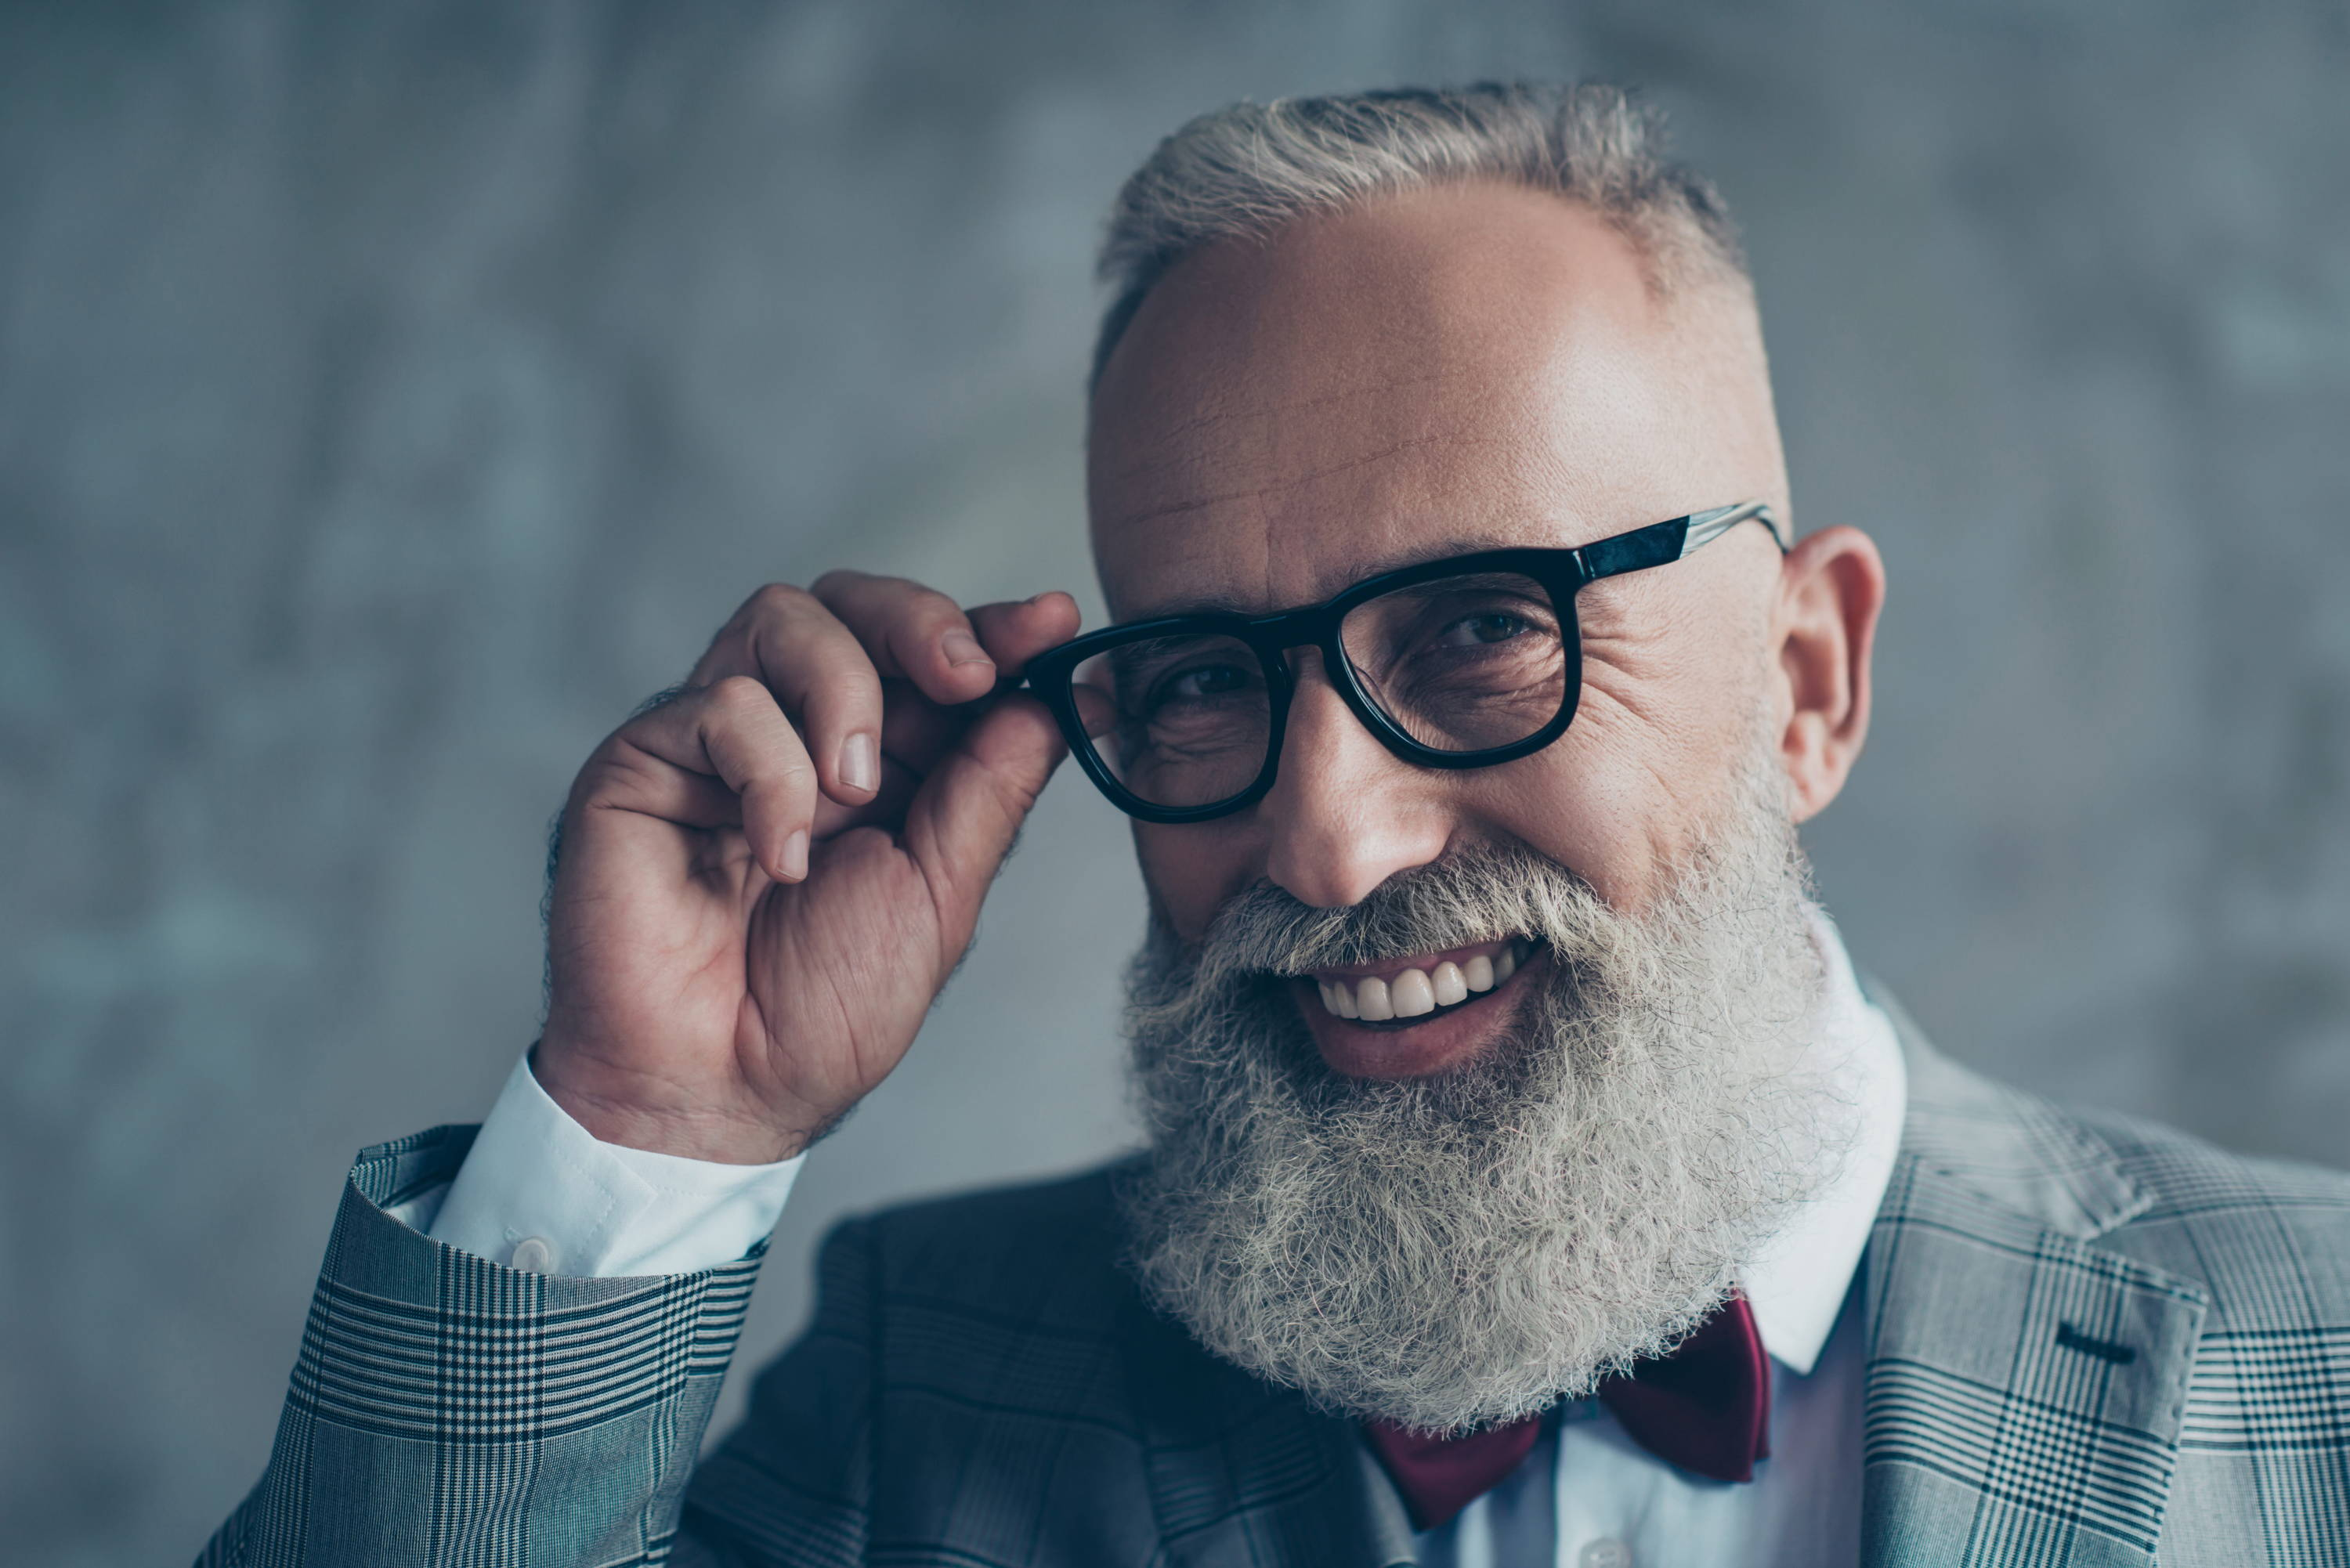 Chic silver haired man with bow tie and glasses embodies hipster style